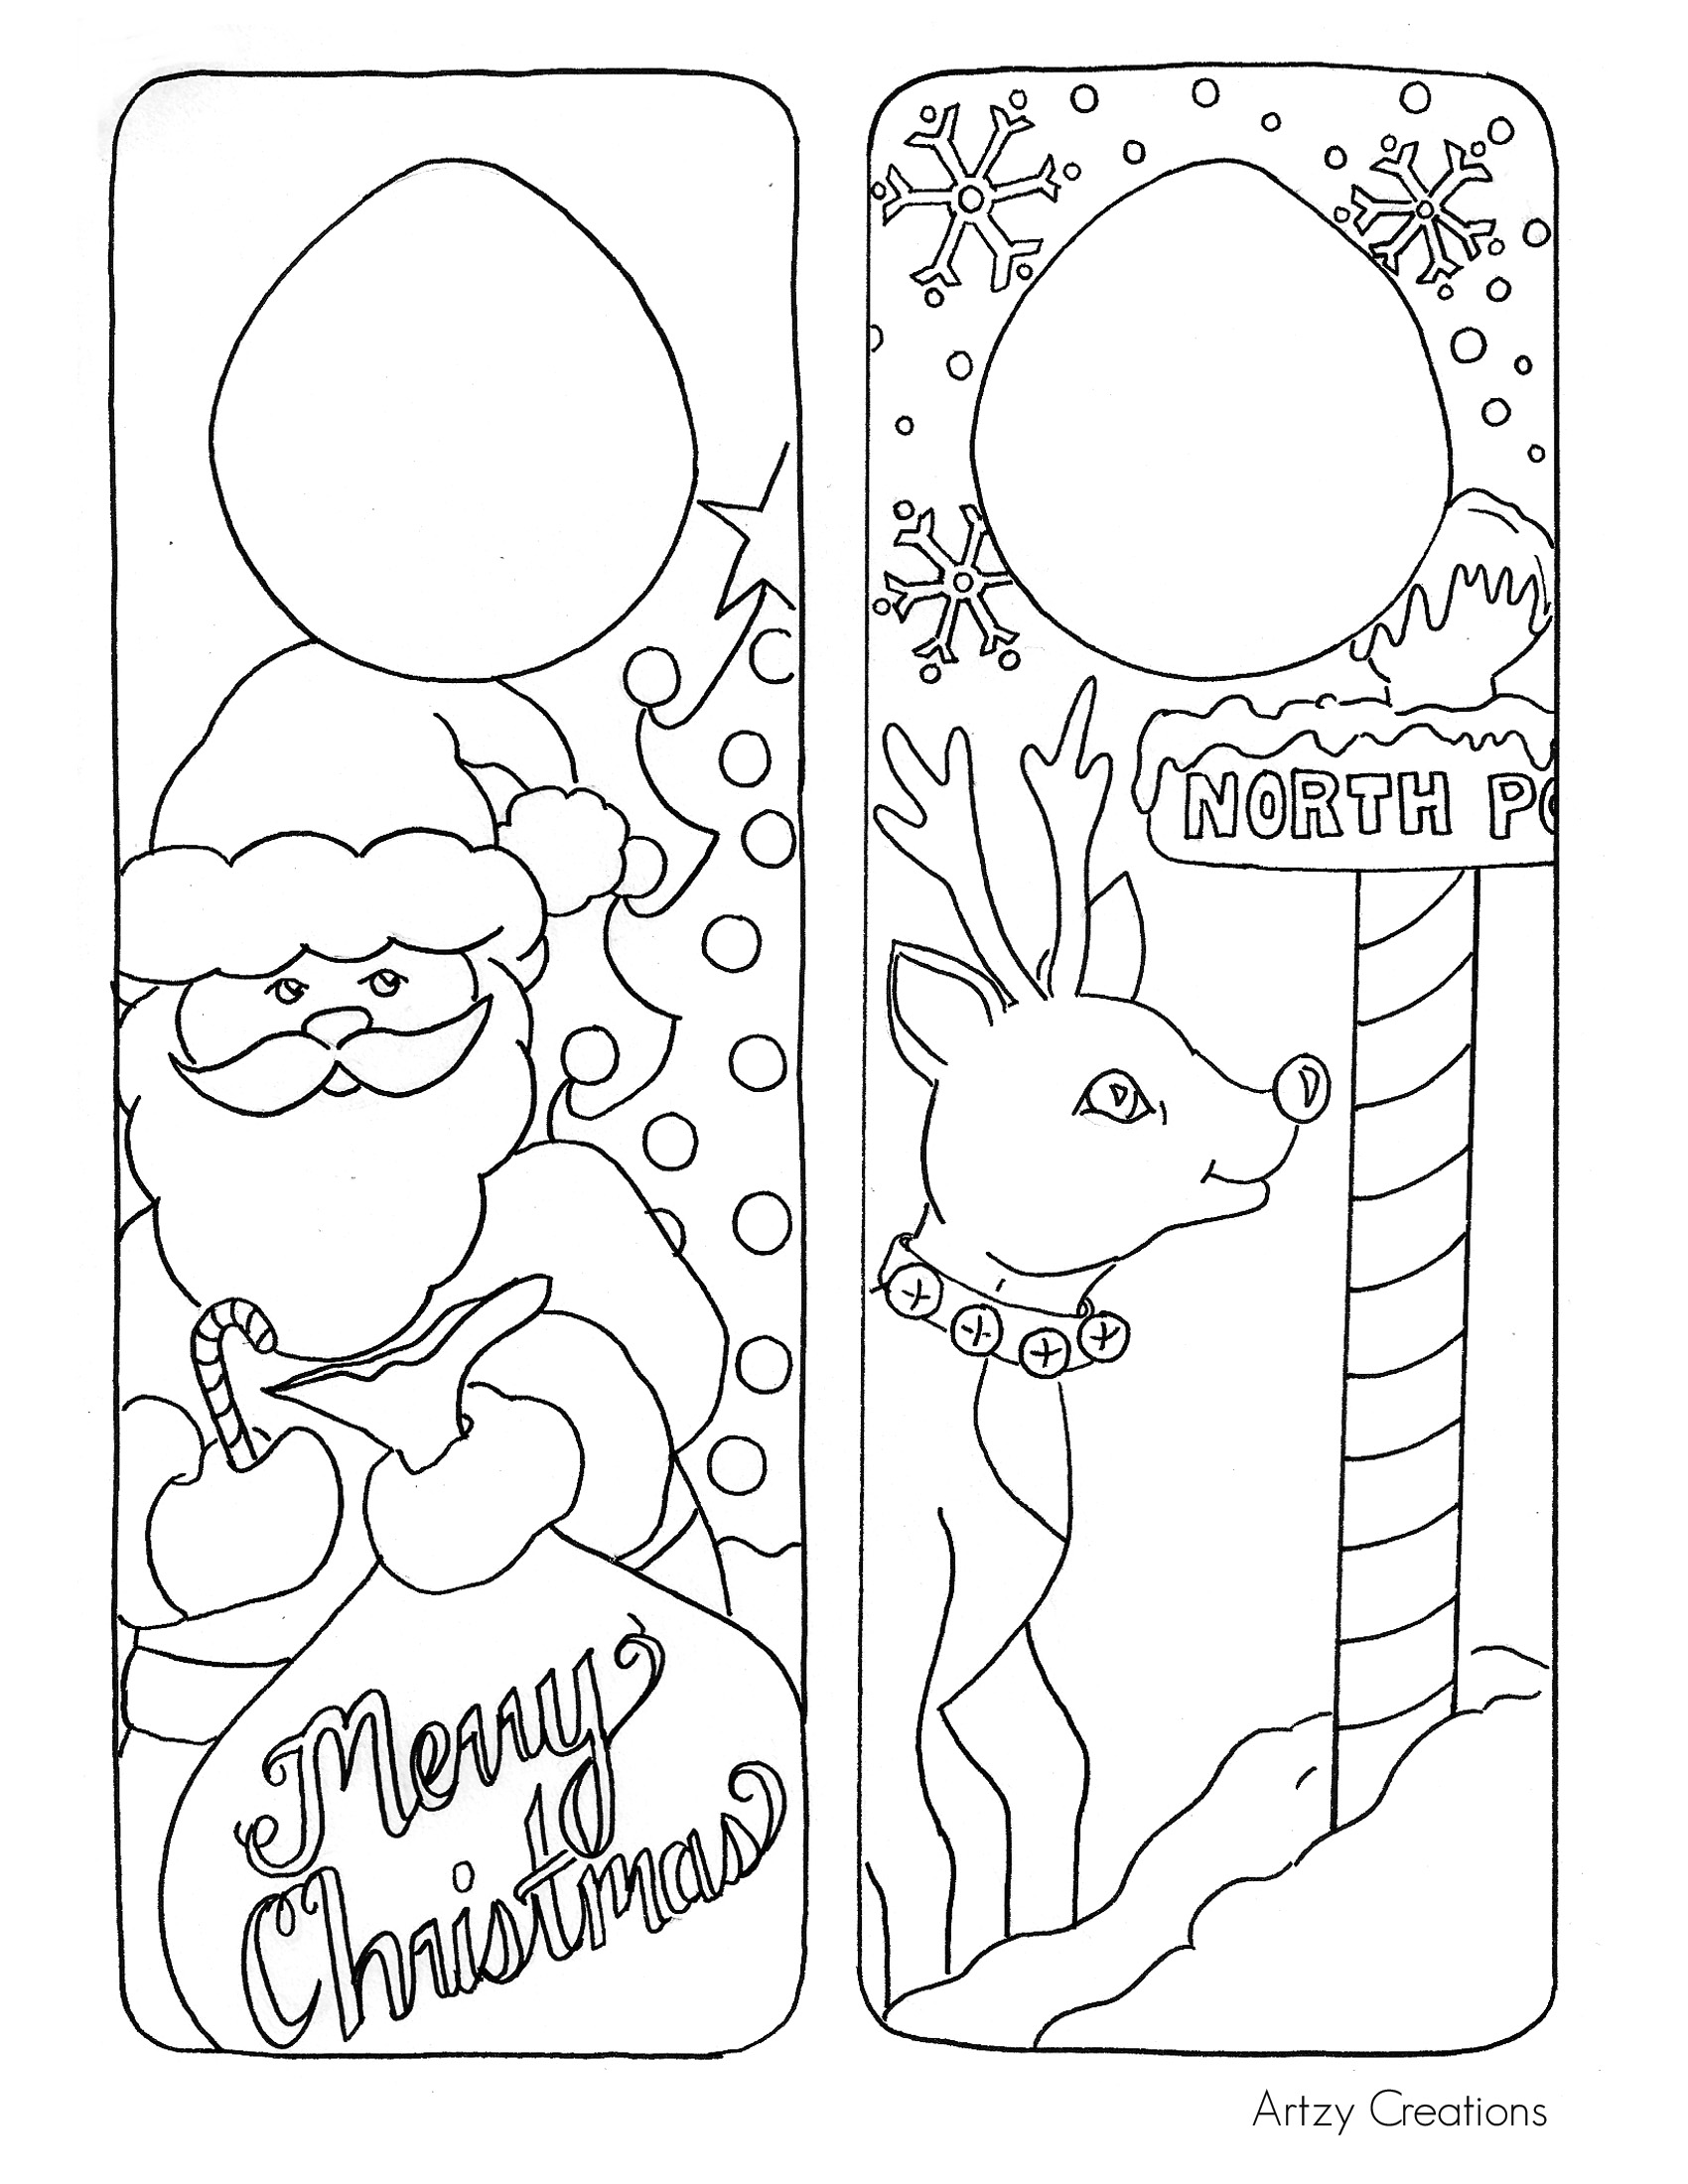 Christmas Coloring To Print For Free With Page Door Hanger Printables The 36th AVENUE